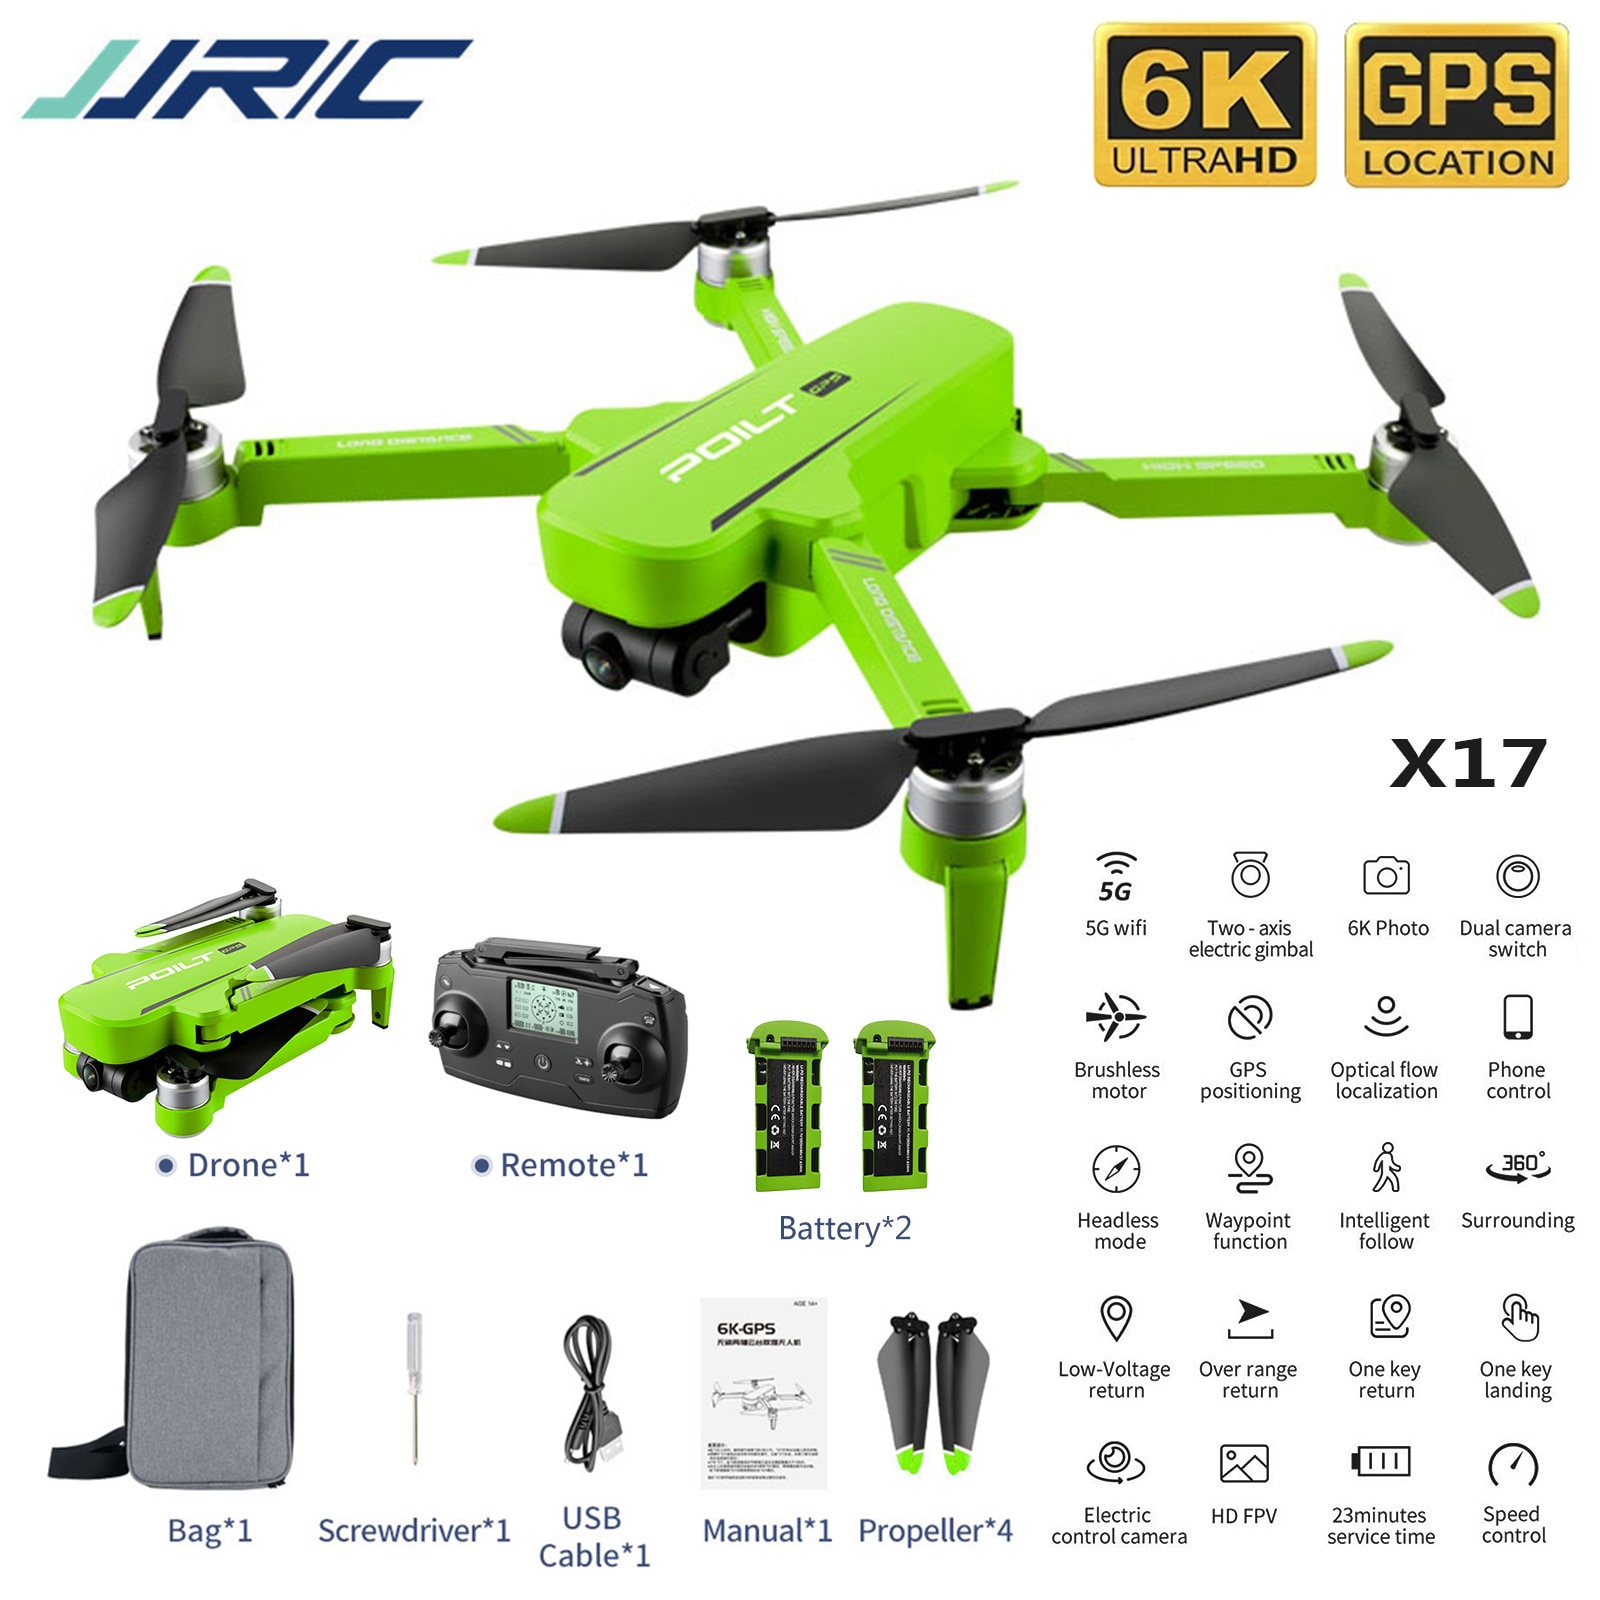 Jjr/c X17 5G 6K-GPS Brushless Two-axis Gimbal Dual Camera Drone 1km Long-distance 30min PROfessional Drone Foldable Quadcopter#Z